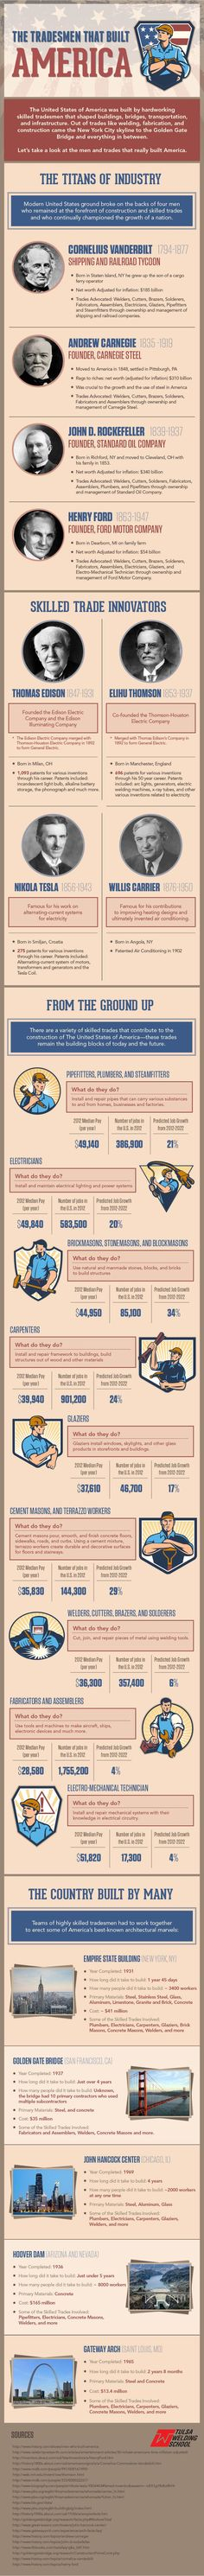 Skilled Tradesmen That Built America Infographic!